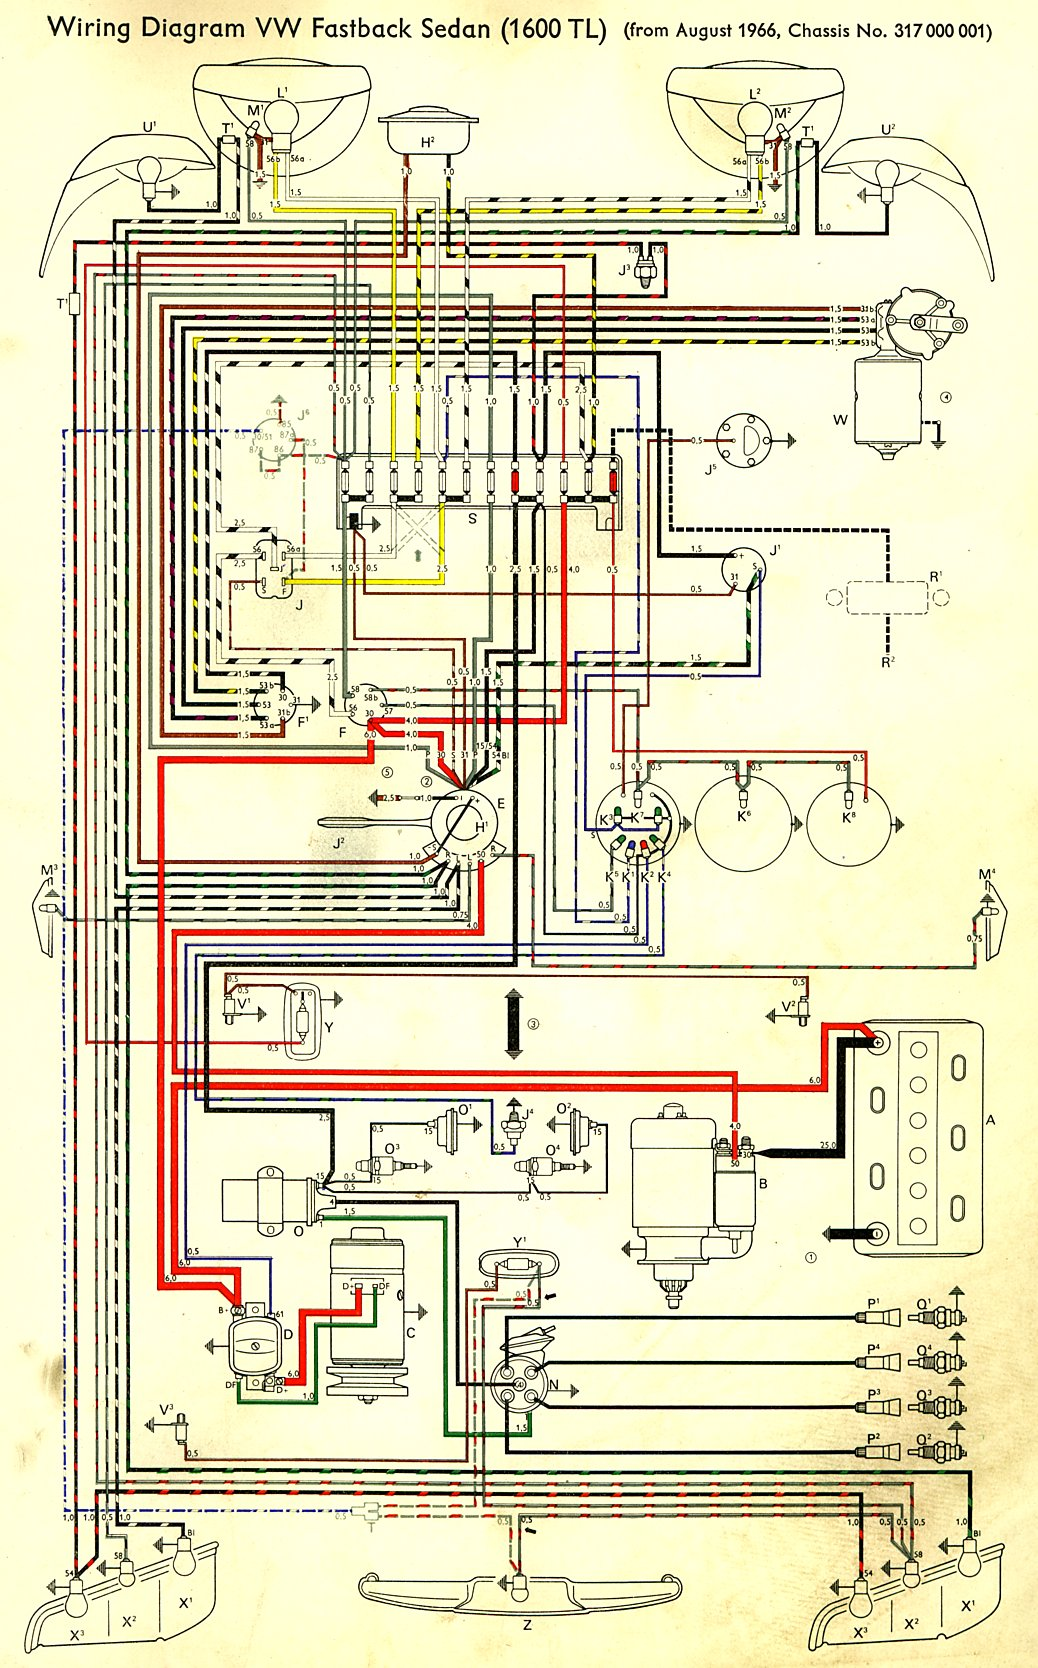 thesamba com type 3 wiring diagrams rh thesamba com 1968 vw type 3 wiring diagram vw type 3 fuel injection wiring diagram